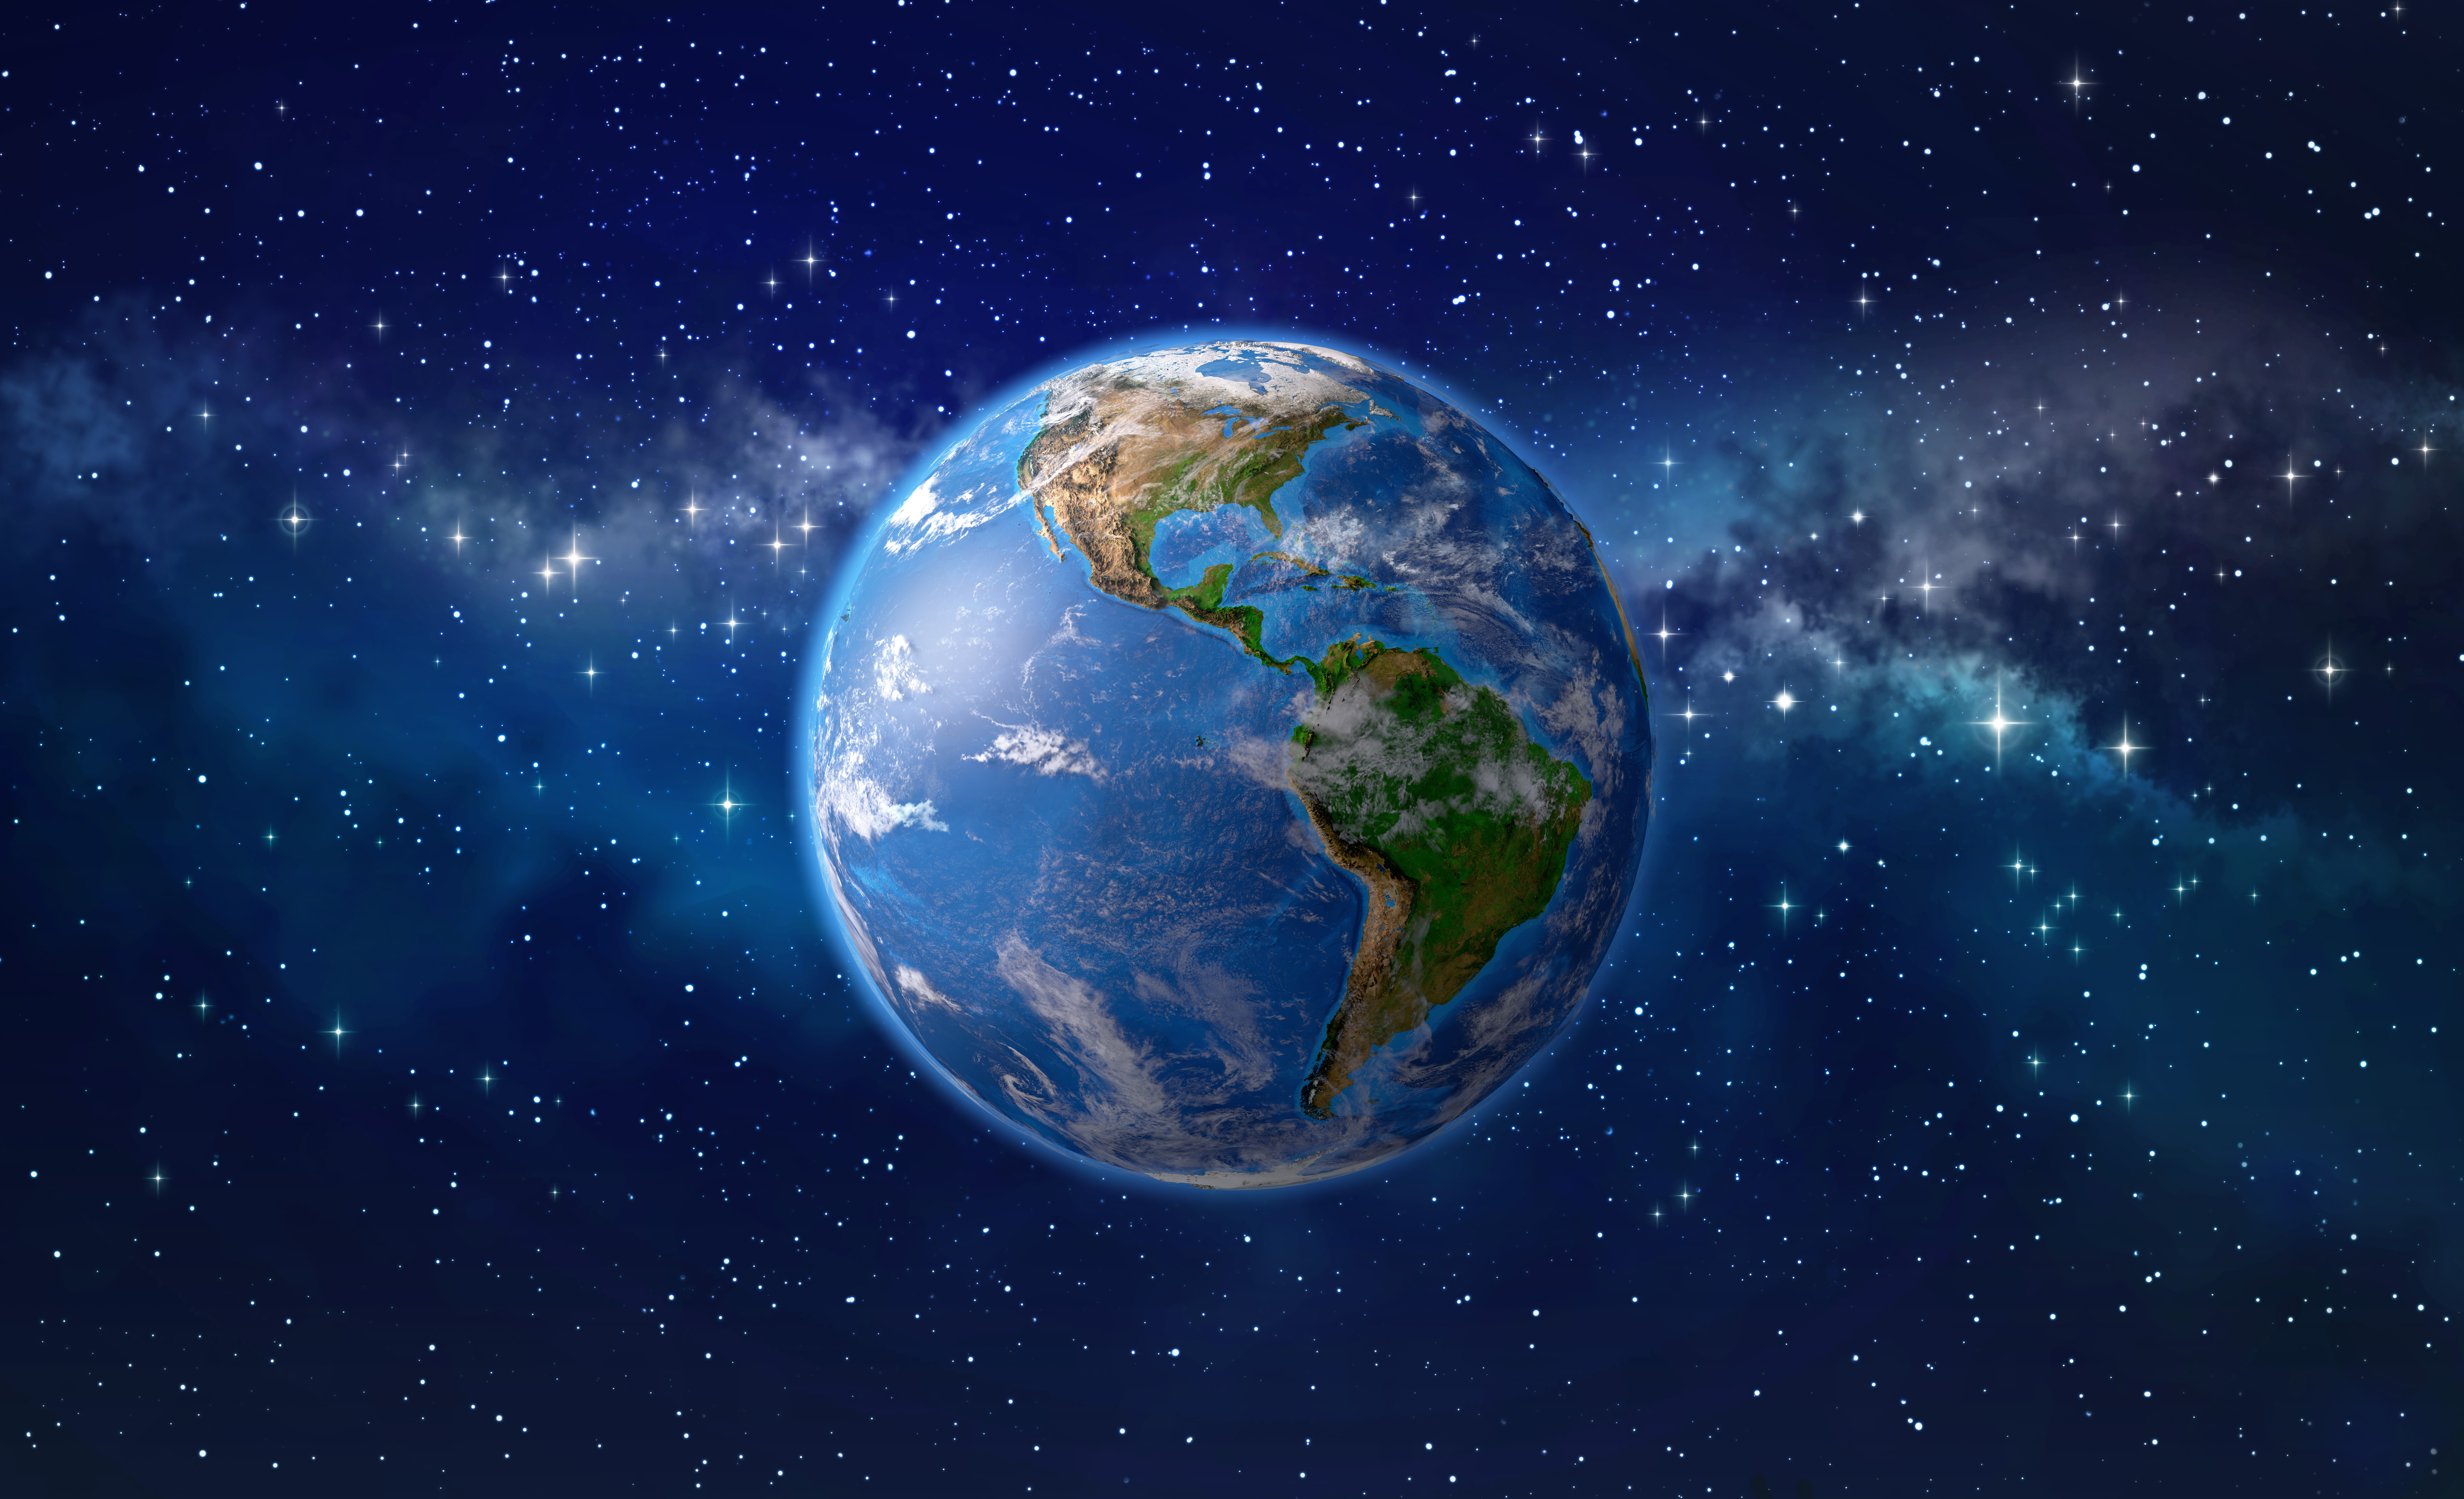 Fun Space Facts For Children: Earth, The Goldilocks Planet